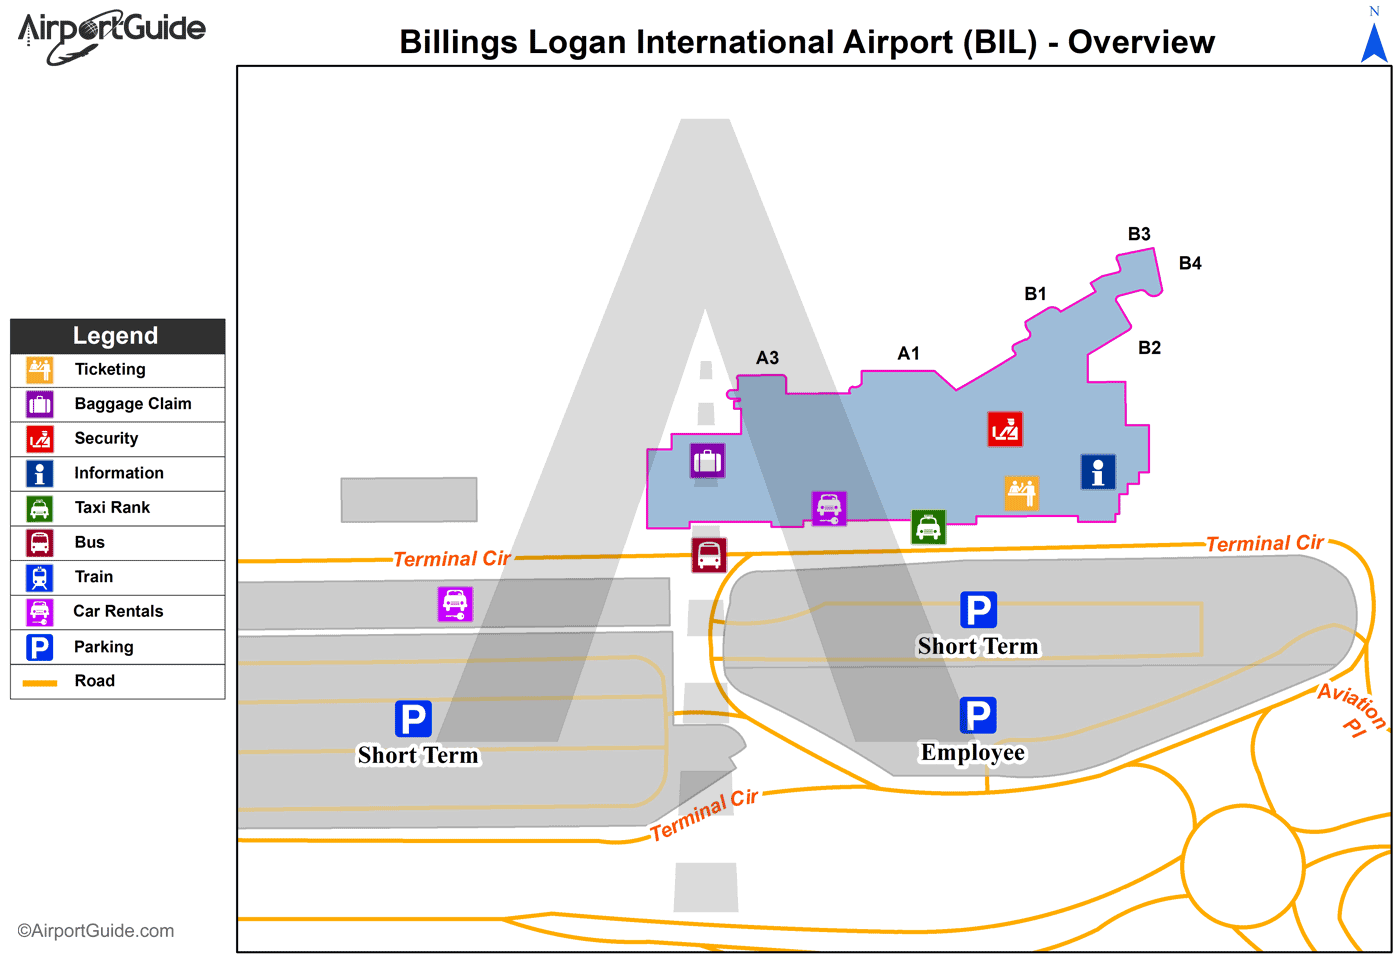 Billings - Billings Logan International (BIL) Airport Terminal Map - Overview